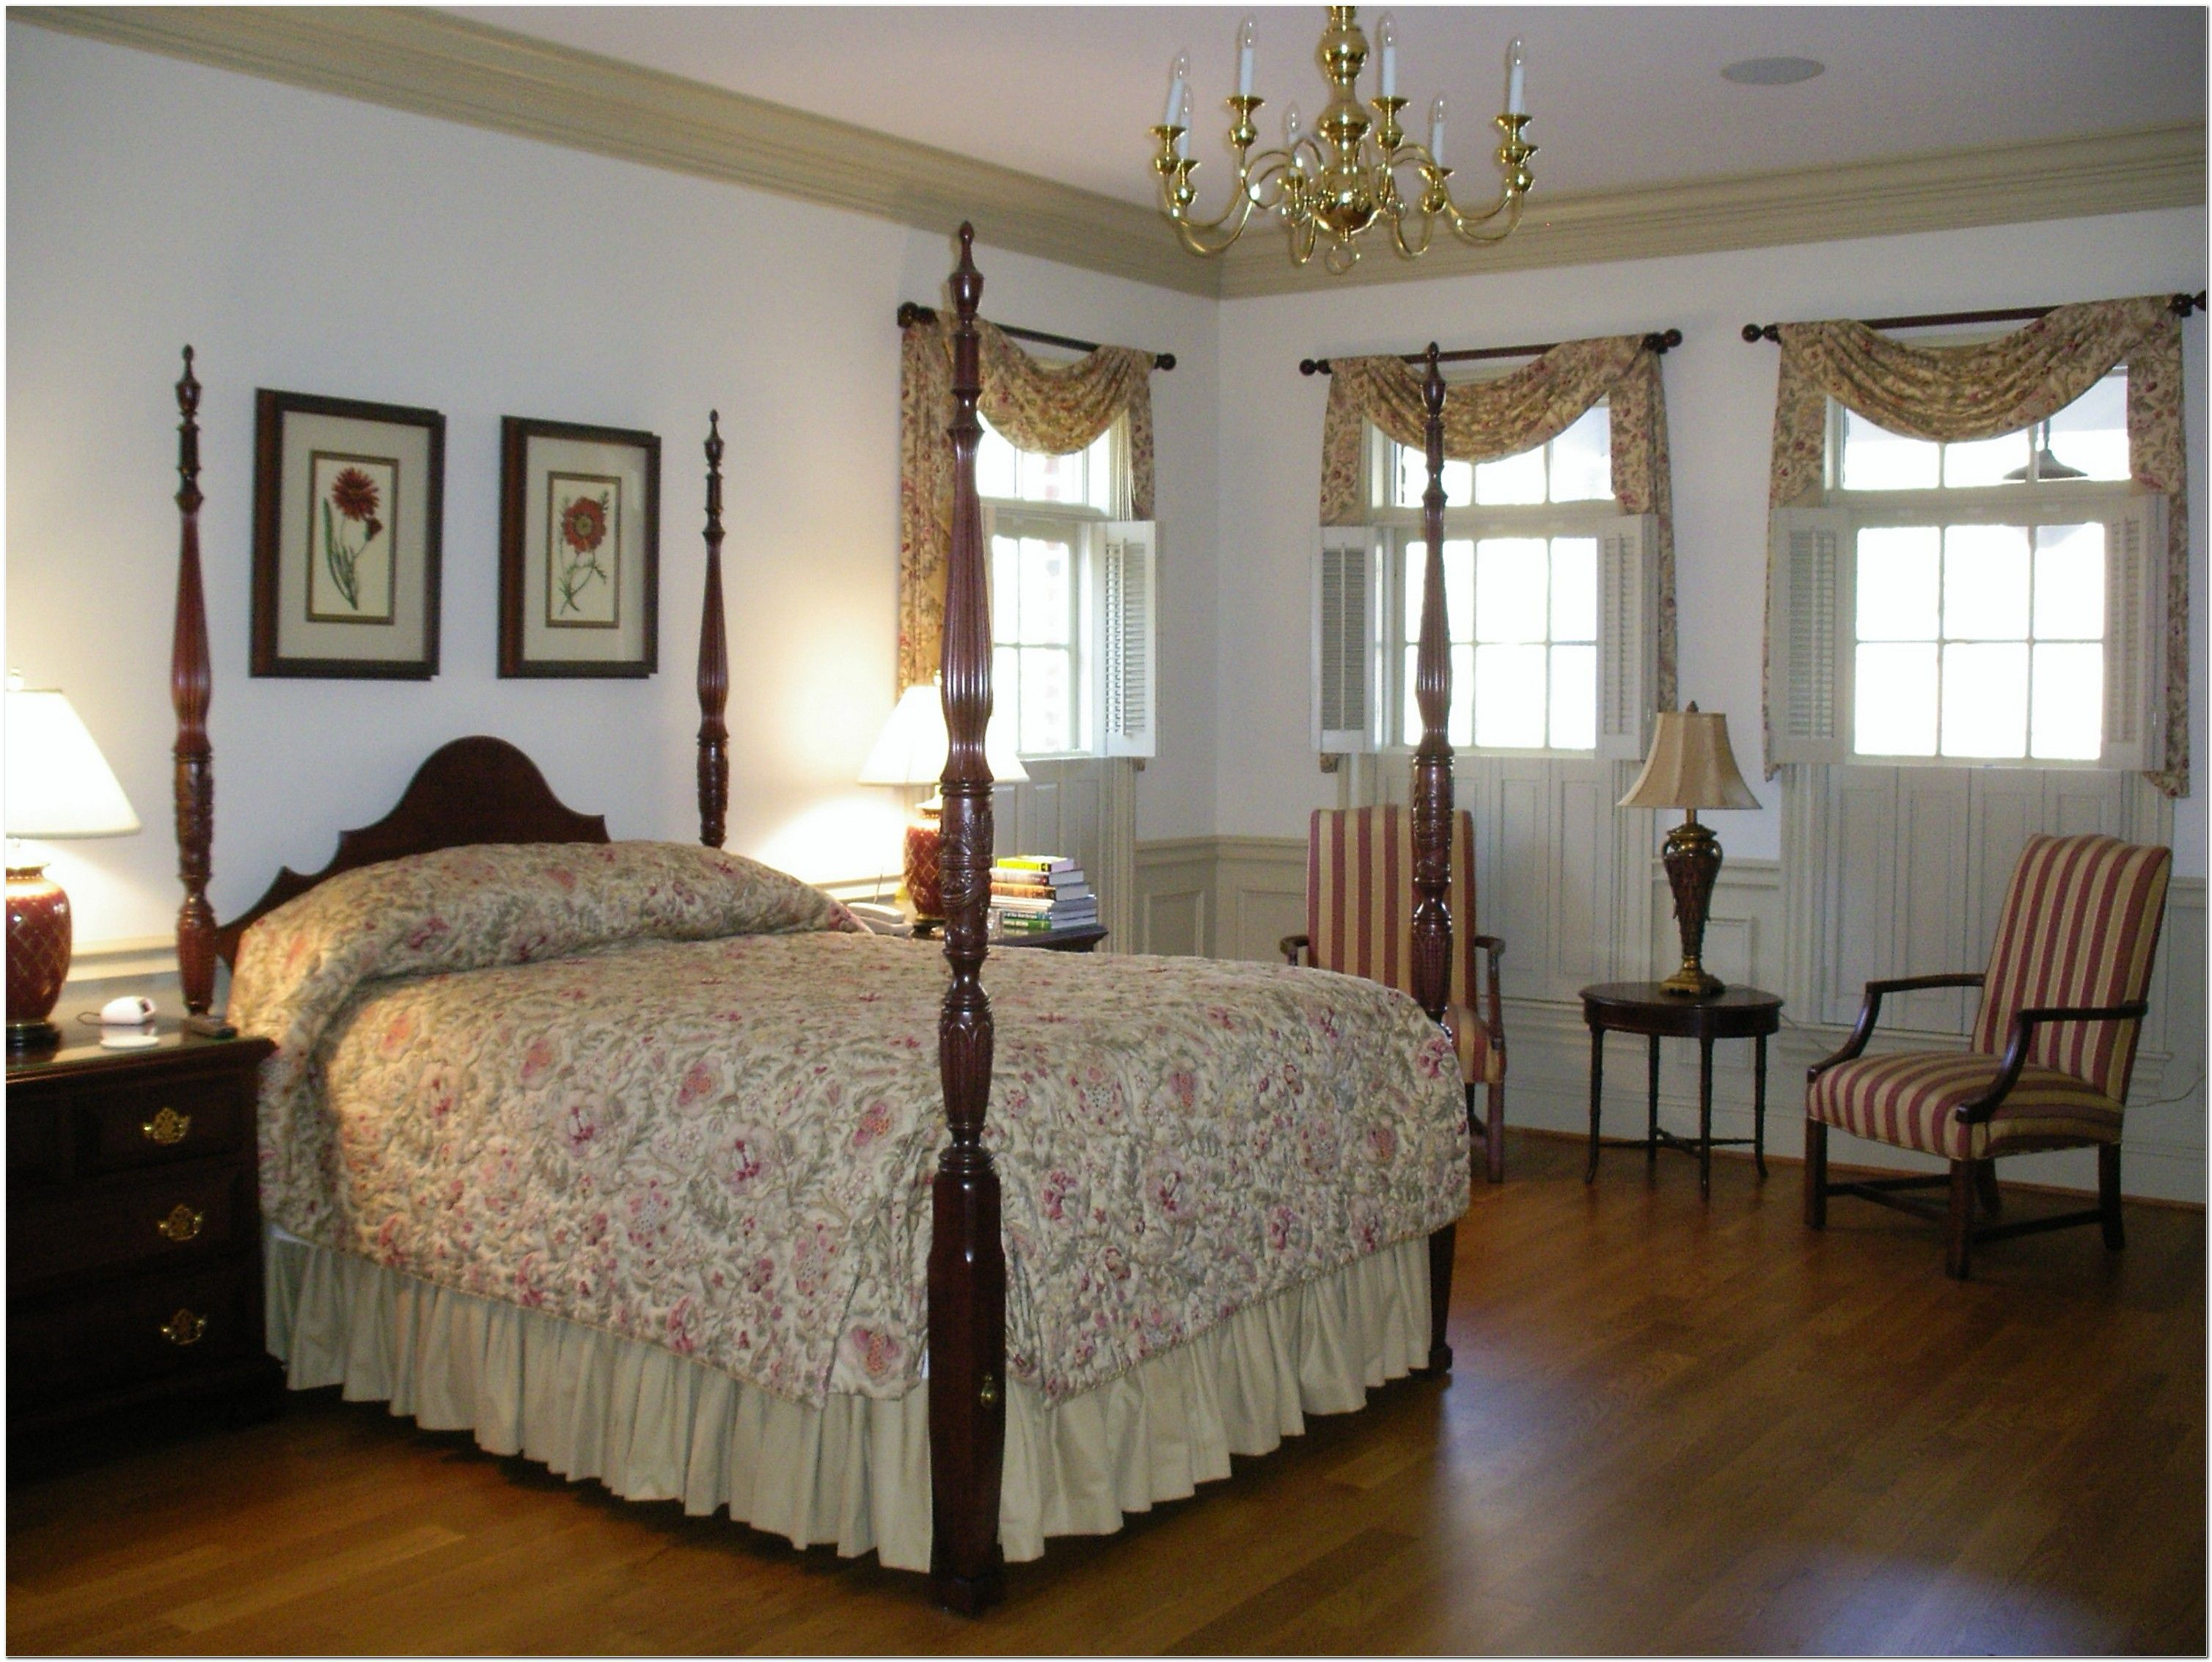 williamsburg window treatments google search williamsburg project pinterest colonial. Black Bedroom Furniture Sets. Home Design Ideas